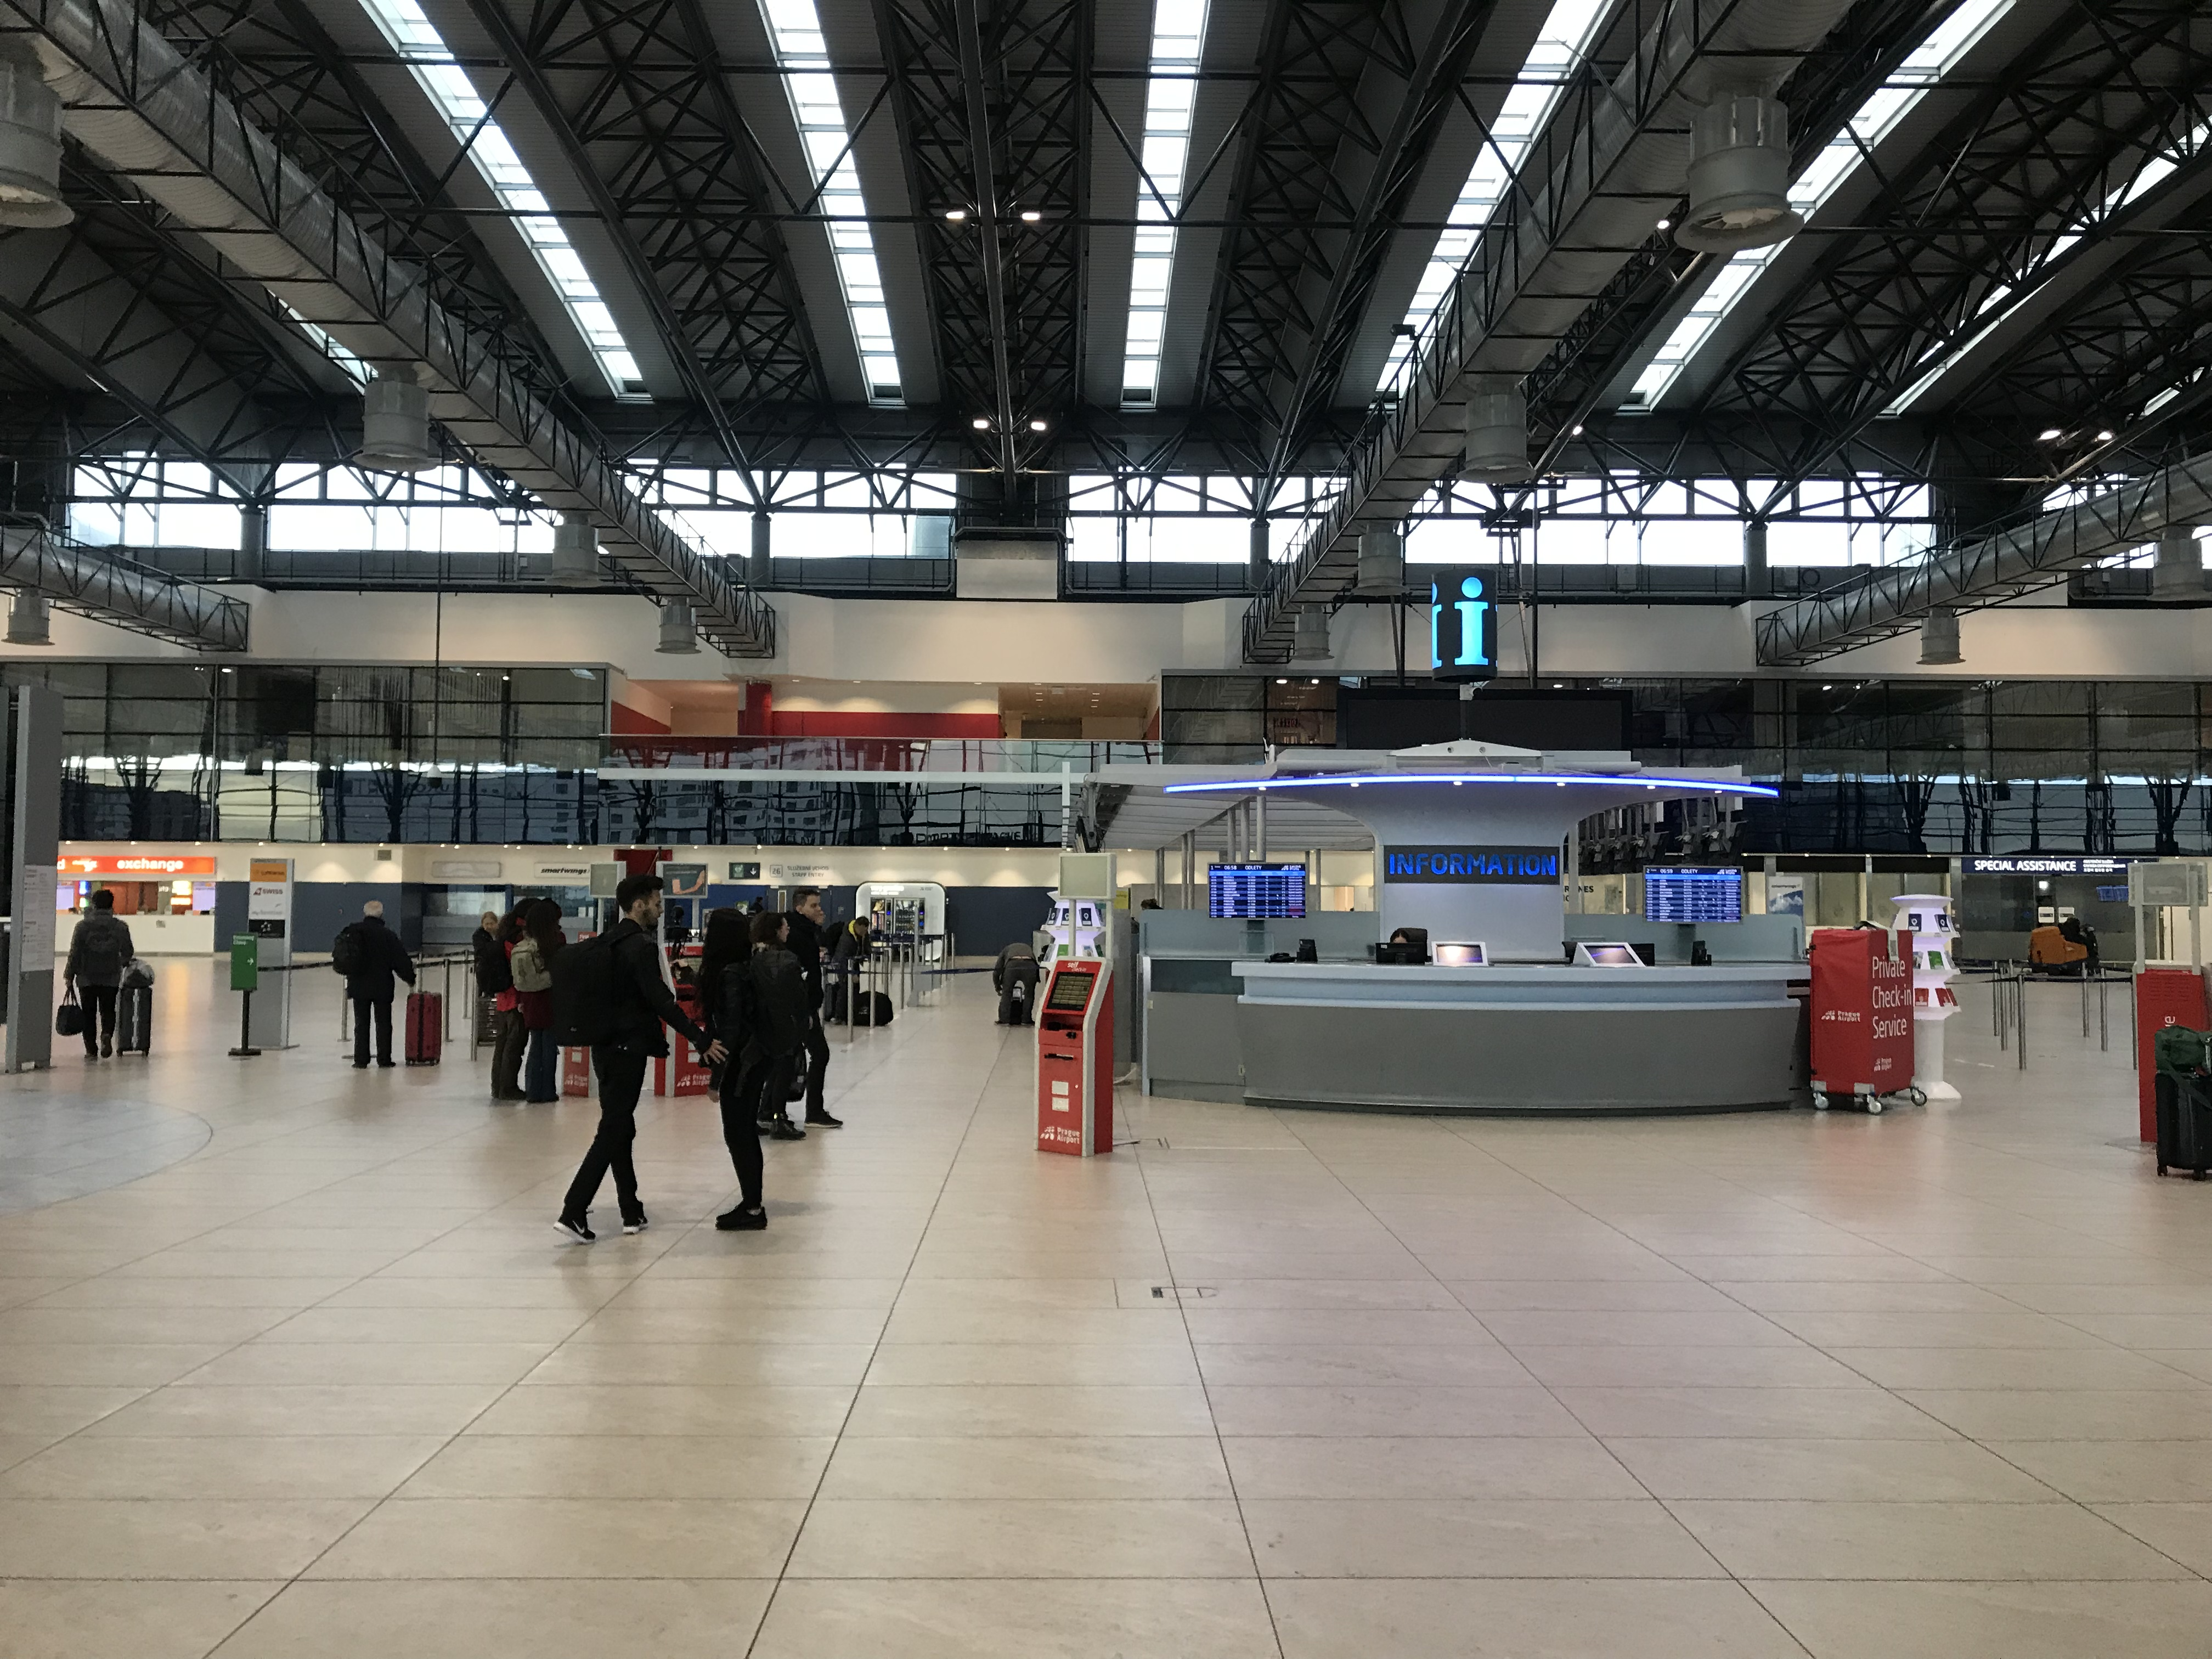 Prague Tips - For any information you need about the airport of Prague, you will find a kiosk in the main hall area of the airport.